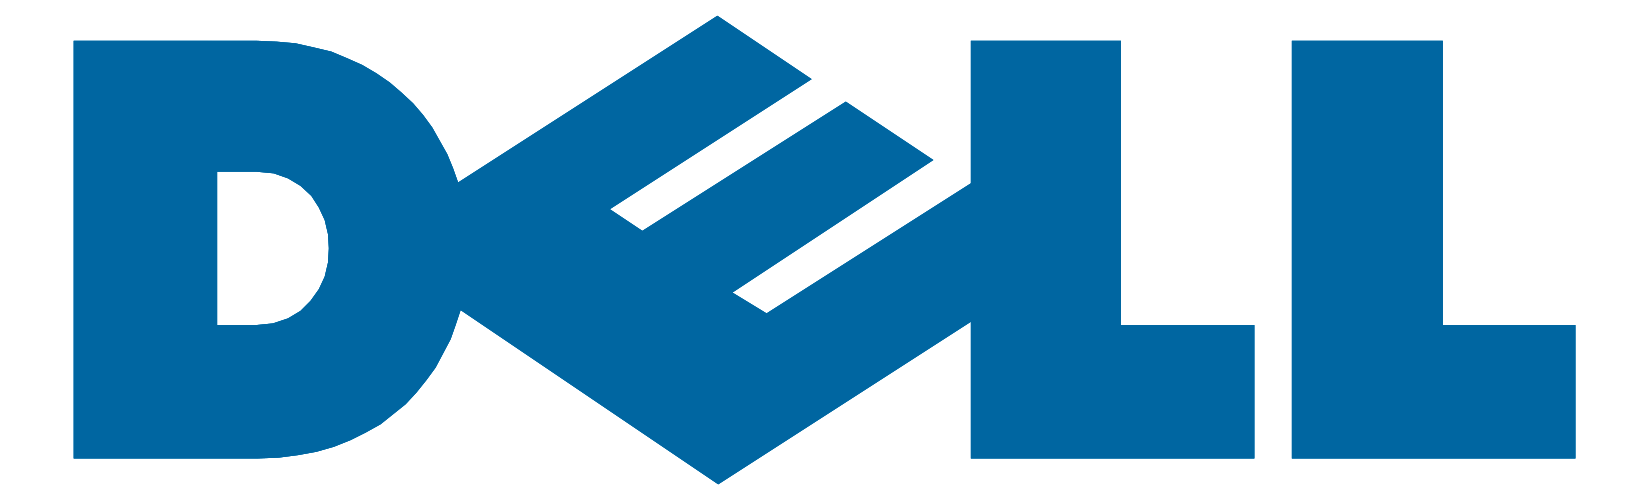 Dell Logo PNG - 29605